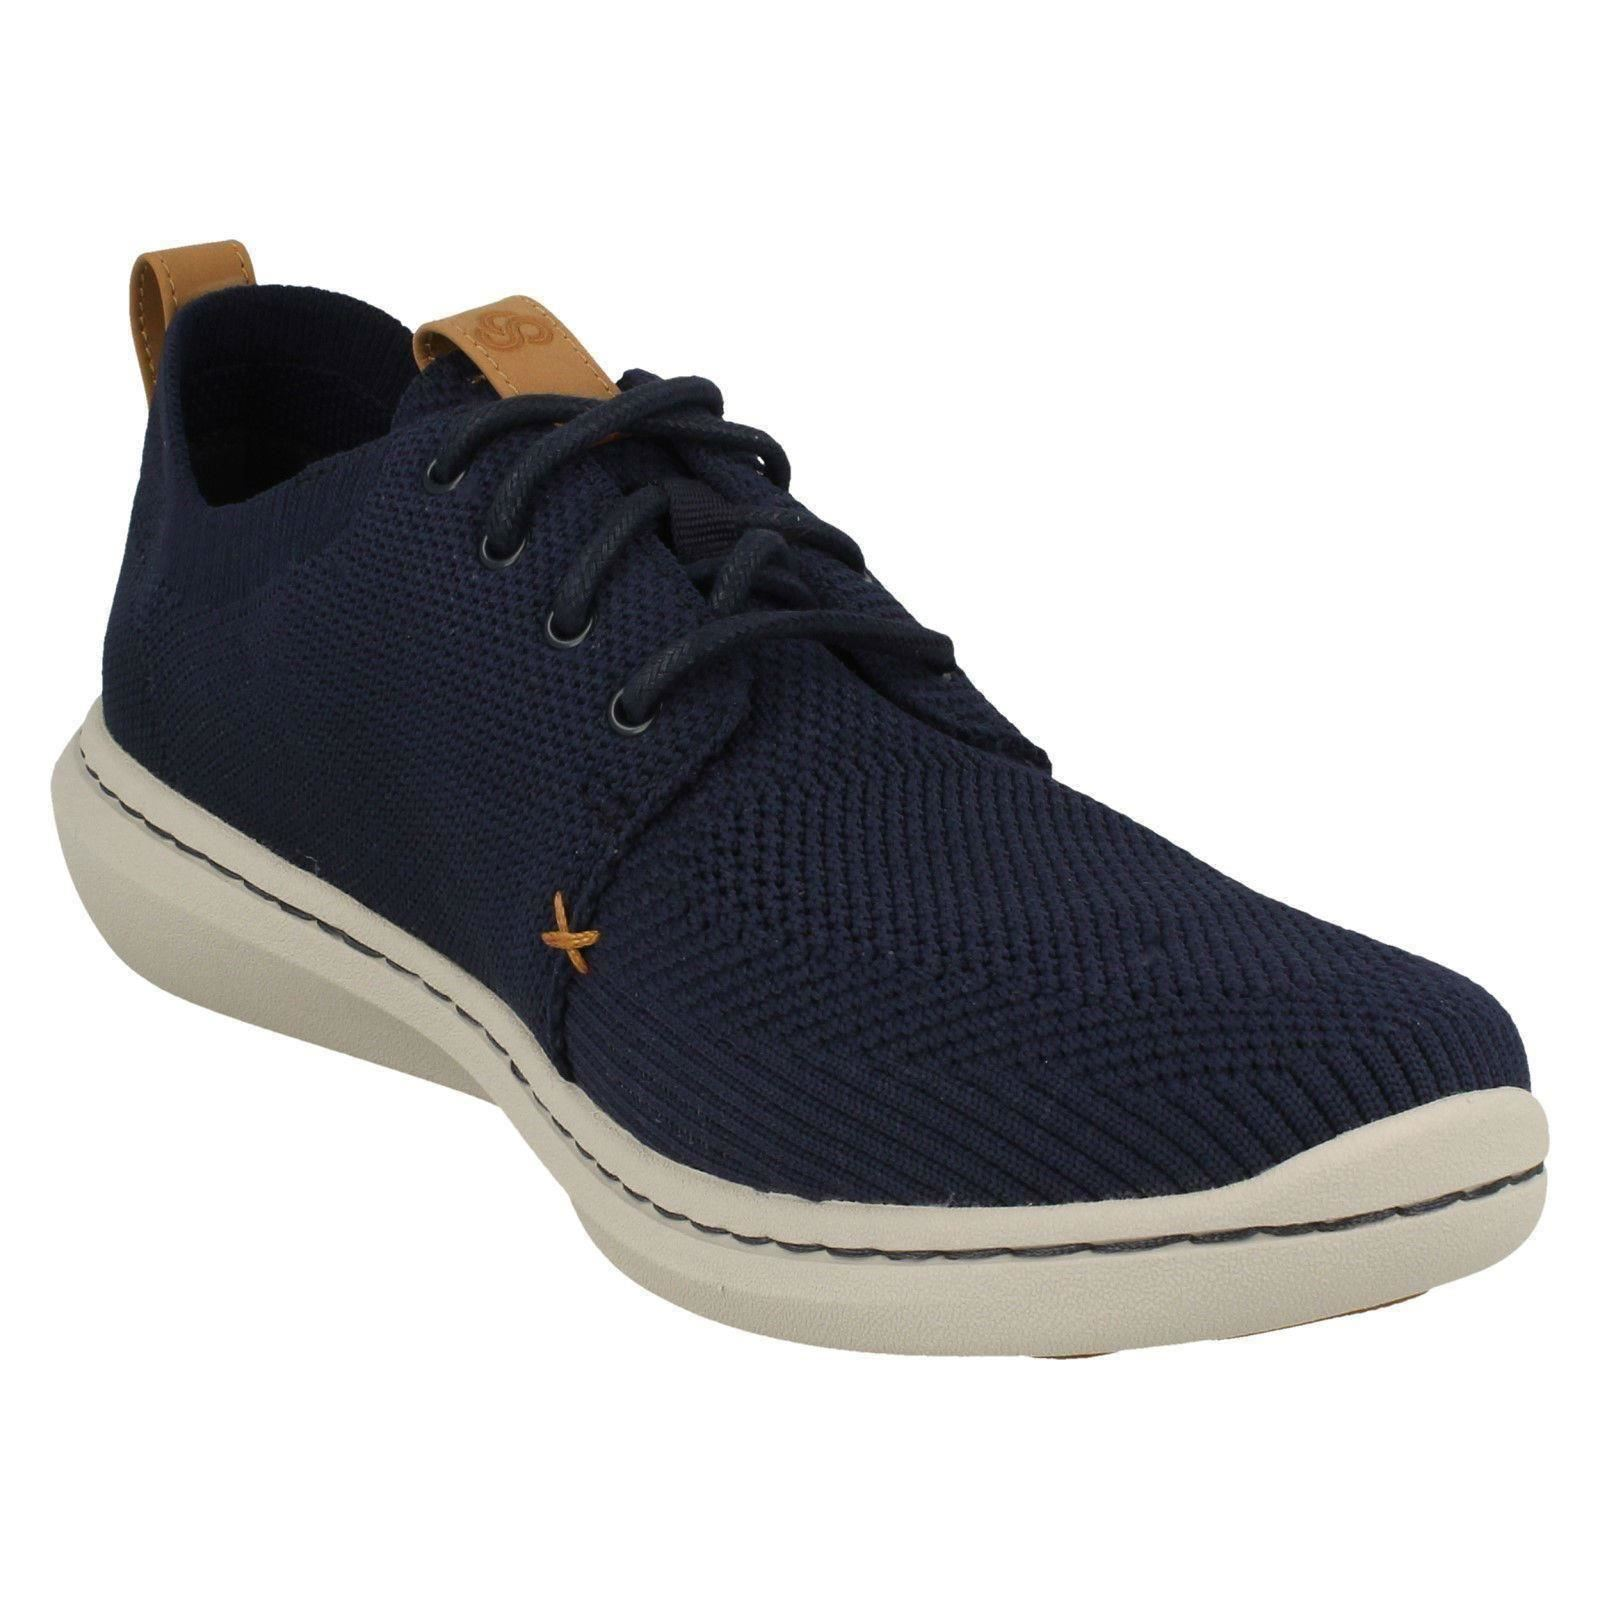 Mens Cloudsteppers by Clarks Lace Up Casual Trainers Label - Step Urban Mix